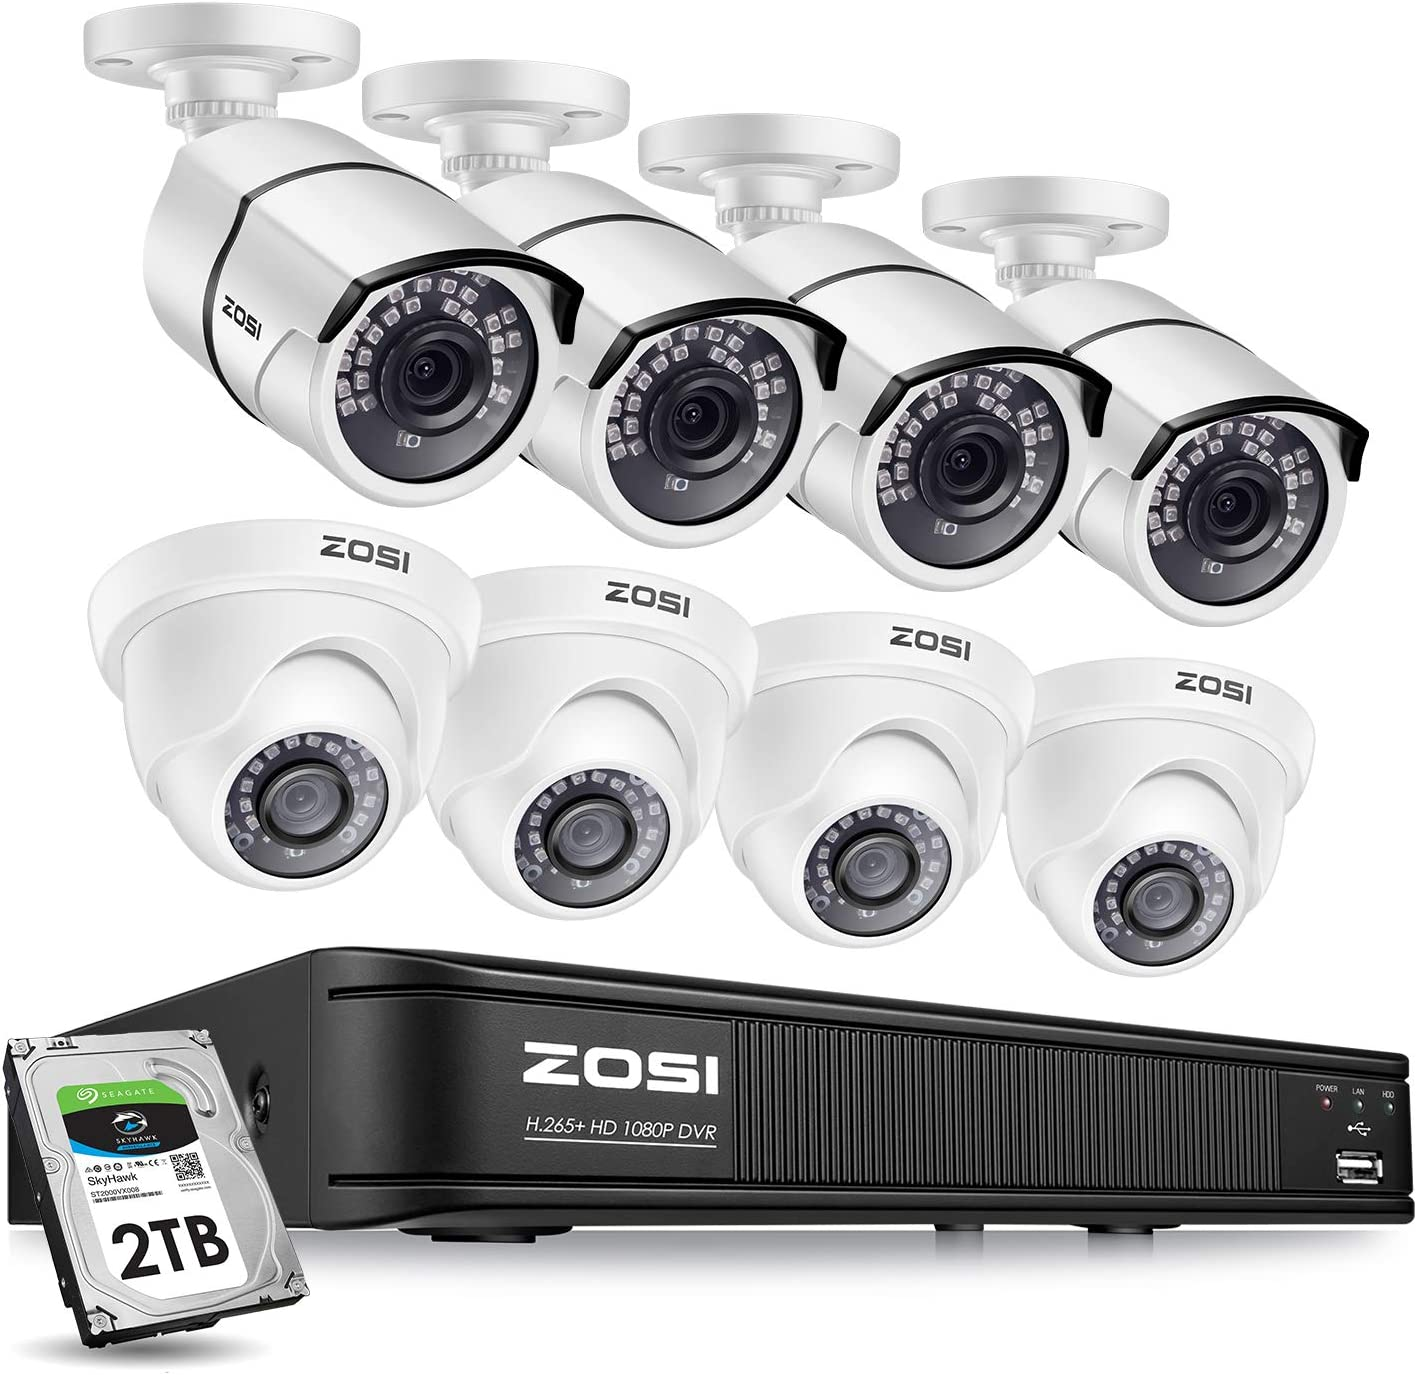 ZOSI 1080p H.265+ Home Security Camera System,8 Channel CCTV DVR Recorder (2TB Hard Drive Built-in) and (8) 2.0MP Surveillance Bullet Dome Camera Outdoor/Indoor ,Remote Access,Motion Detection